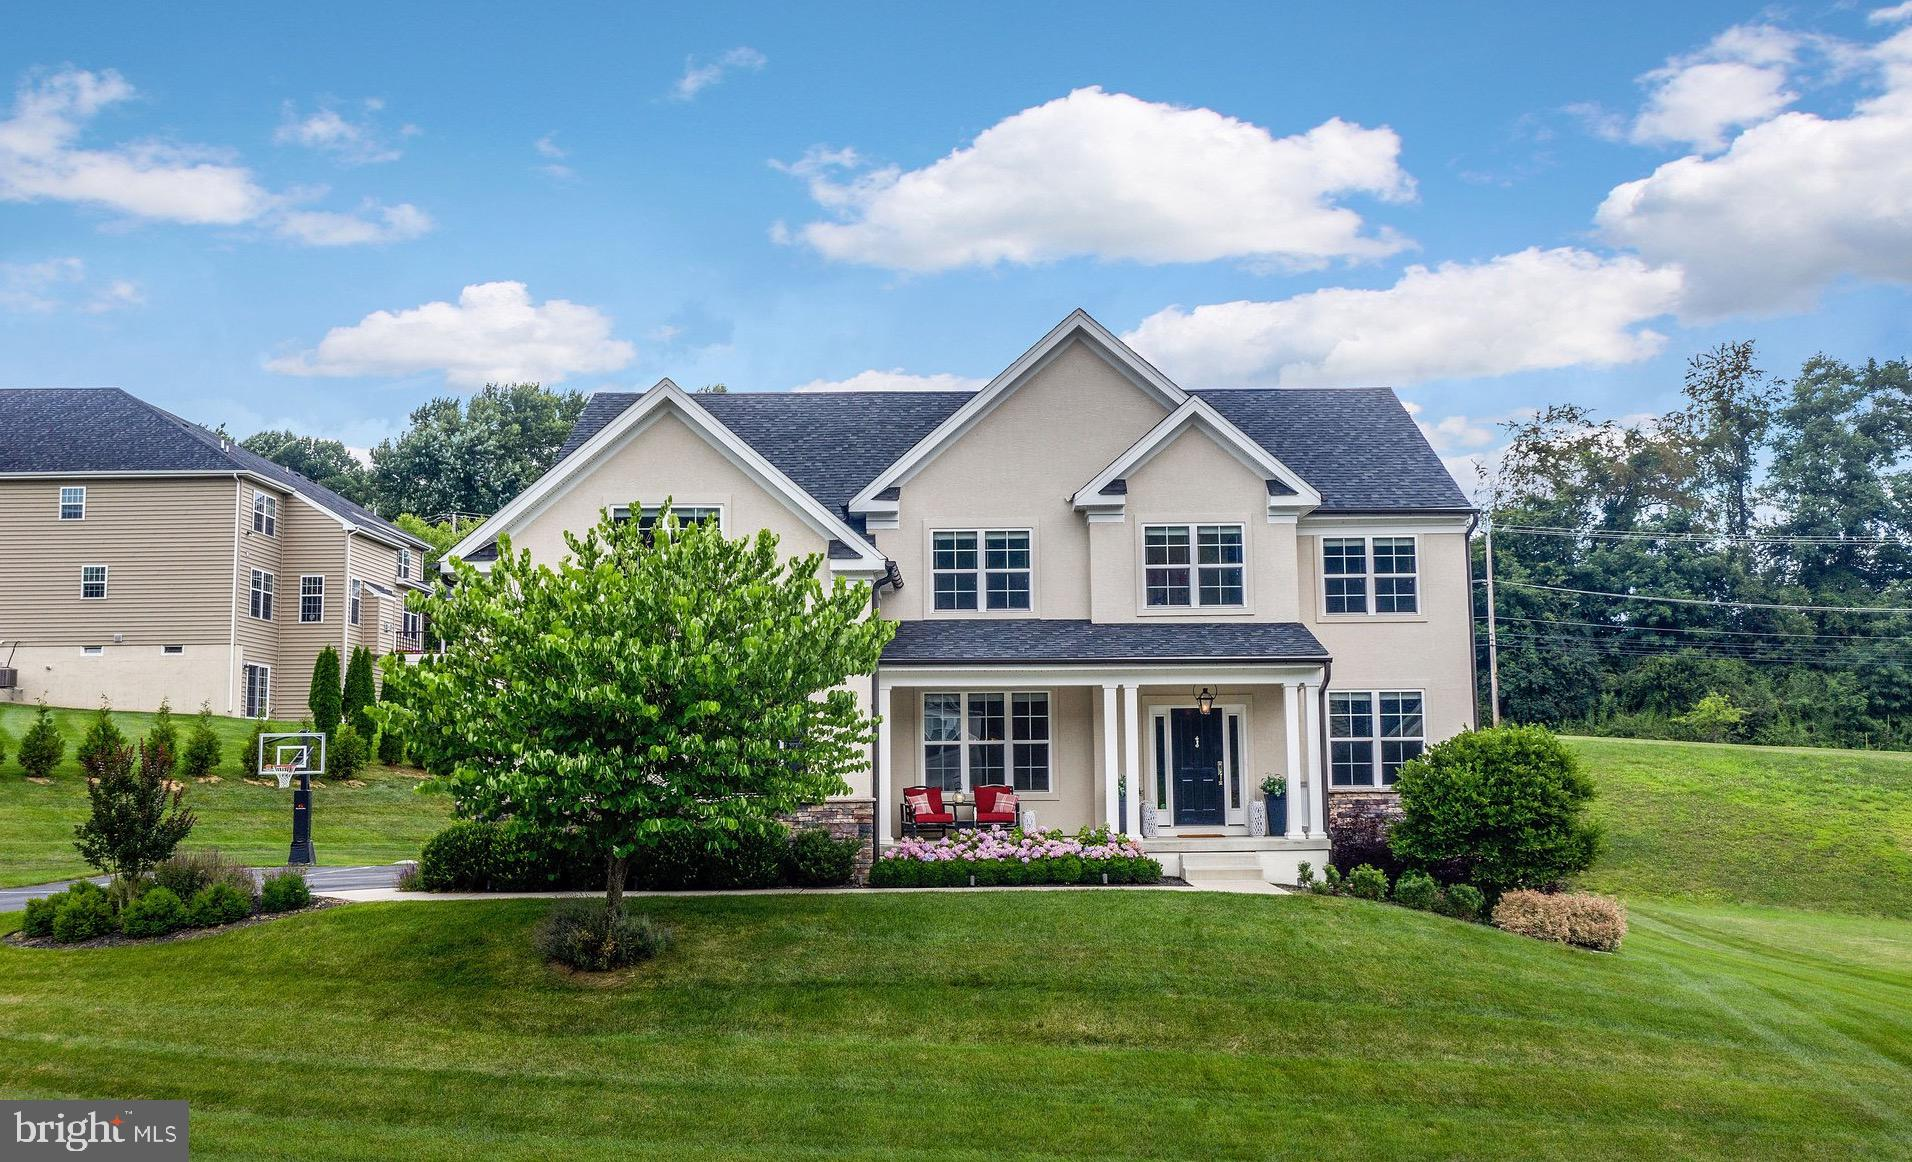 Don't miss this turn-key, extensively upgraded home with more than 5,100 square feet of livable space in popular West Bradford Township! Only 7 years young, 710 Whiffletree Lane offers everything desired by discerning buyers and delivers gorgeous, high-end designer touches, both inside and out. Upon entrance, you'll immediately notice the dark walnut stained hardwood flooring almost throughout the entire main level and into the upstairs hallway, all in mint condition. Off the foyer you'll find formal living and dining rooms, both with extensive wainscoting. Behind the living room is an updated powder room along with a large private office space, perfect for working from home. Walk through the dining room to the lovely coffee and wine bar, complete with cabinetry, a quartz countertop, built-in beverage center and restaurant-quality ice maker. The stunning kitchen features a large center island, gas range, custom range hood, pot filler, double wall oven, upgraded counter depth refrigerator, marble backsplash and walk-in pantry. A light-filled breakfast room offsets the kitchen and walks out onto the large flagstone patio outside. At the heart of the home sits a huge two-story family room with a gas fireplace, extensive windows and a French door leading to the outdoor living room. You will be the envy of the neighborhood with this covered deck, which includes another gas fireplace, a television, integrated speaker system and 4 built-in Lynx heaters making this a space that can be used in all four seasons! The deck connects to a spacious flagstone patio which wraps all the way to the driveway. A laundry room with marble countertops, soaking sink, cabinetry and an oversize two car garage complete the main level. The lovely split staircase leads to a second level as beautiful as the first. You'll notice that the extensive wainscoting continues upstairs throughout the long hallway with hardwood flooring and built-in picture lighting. The owner's suite includes a large prim